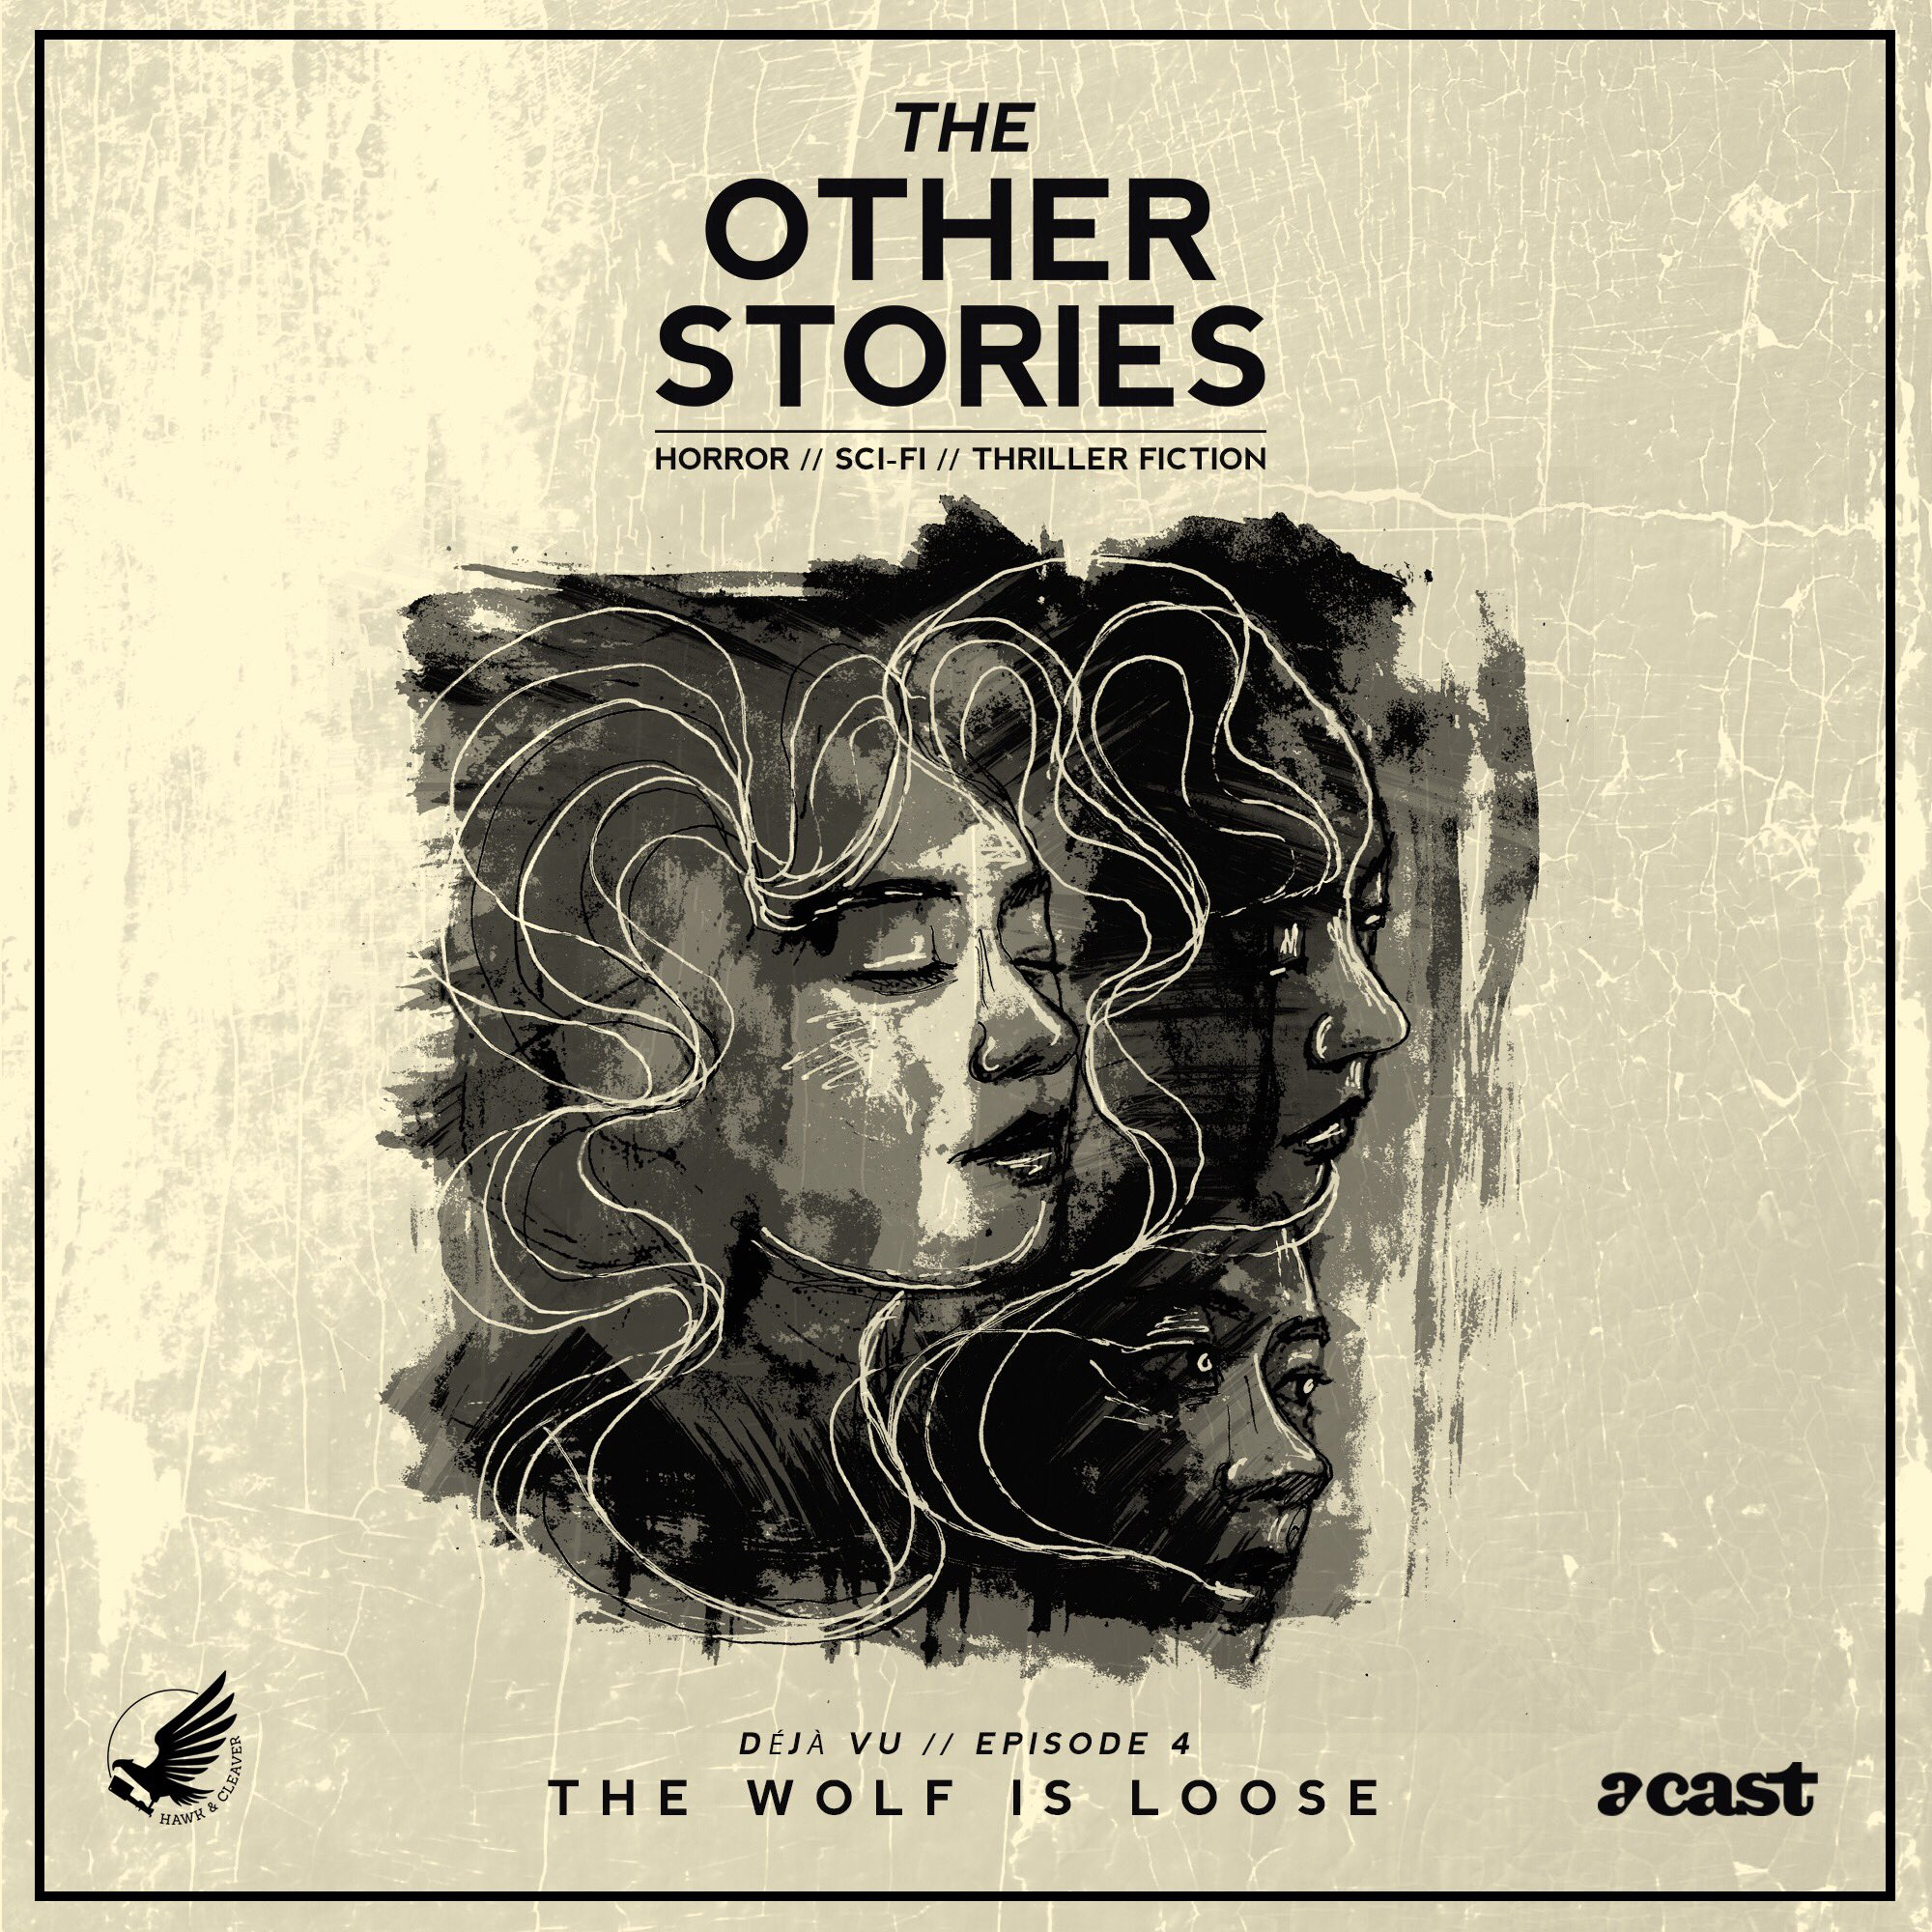 Check out my story The Wolf is Loose on The Other Stories Podcast